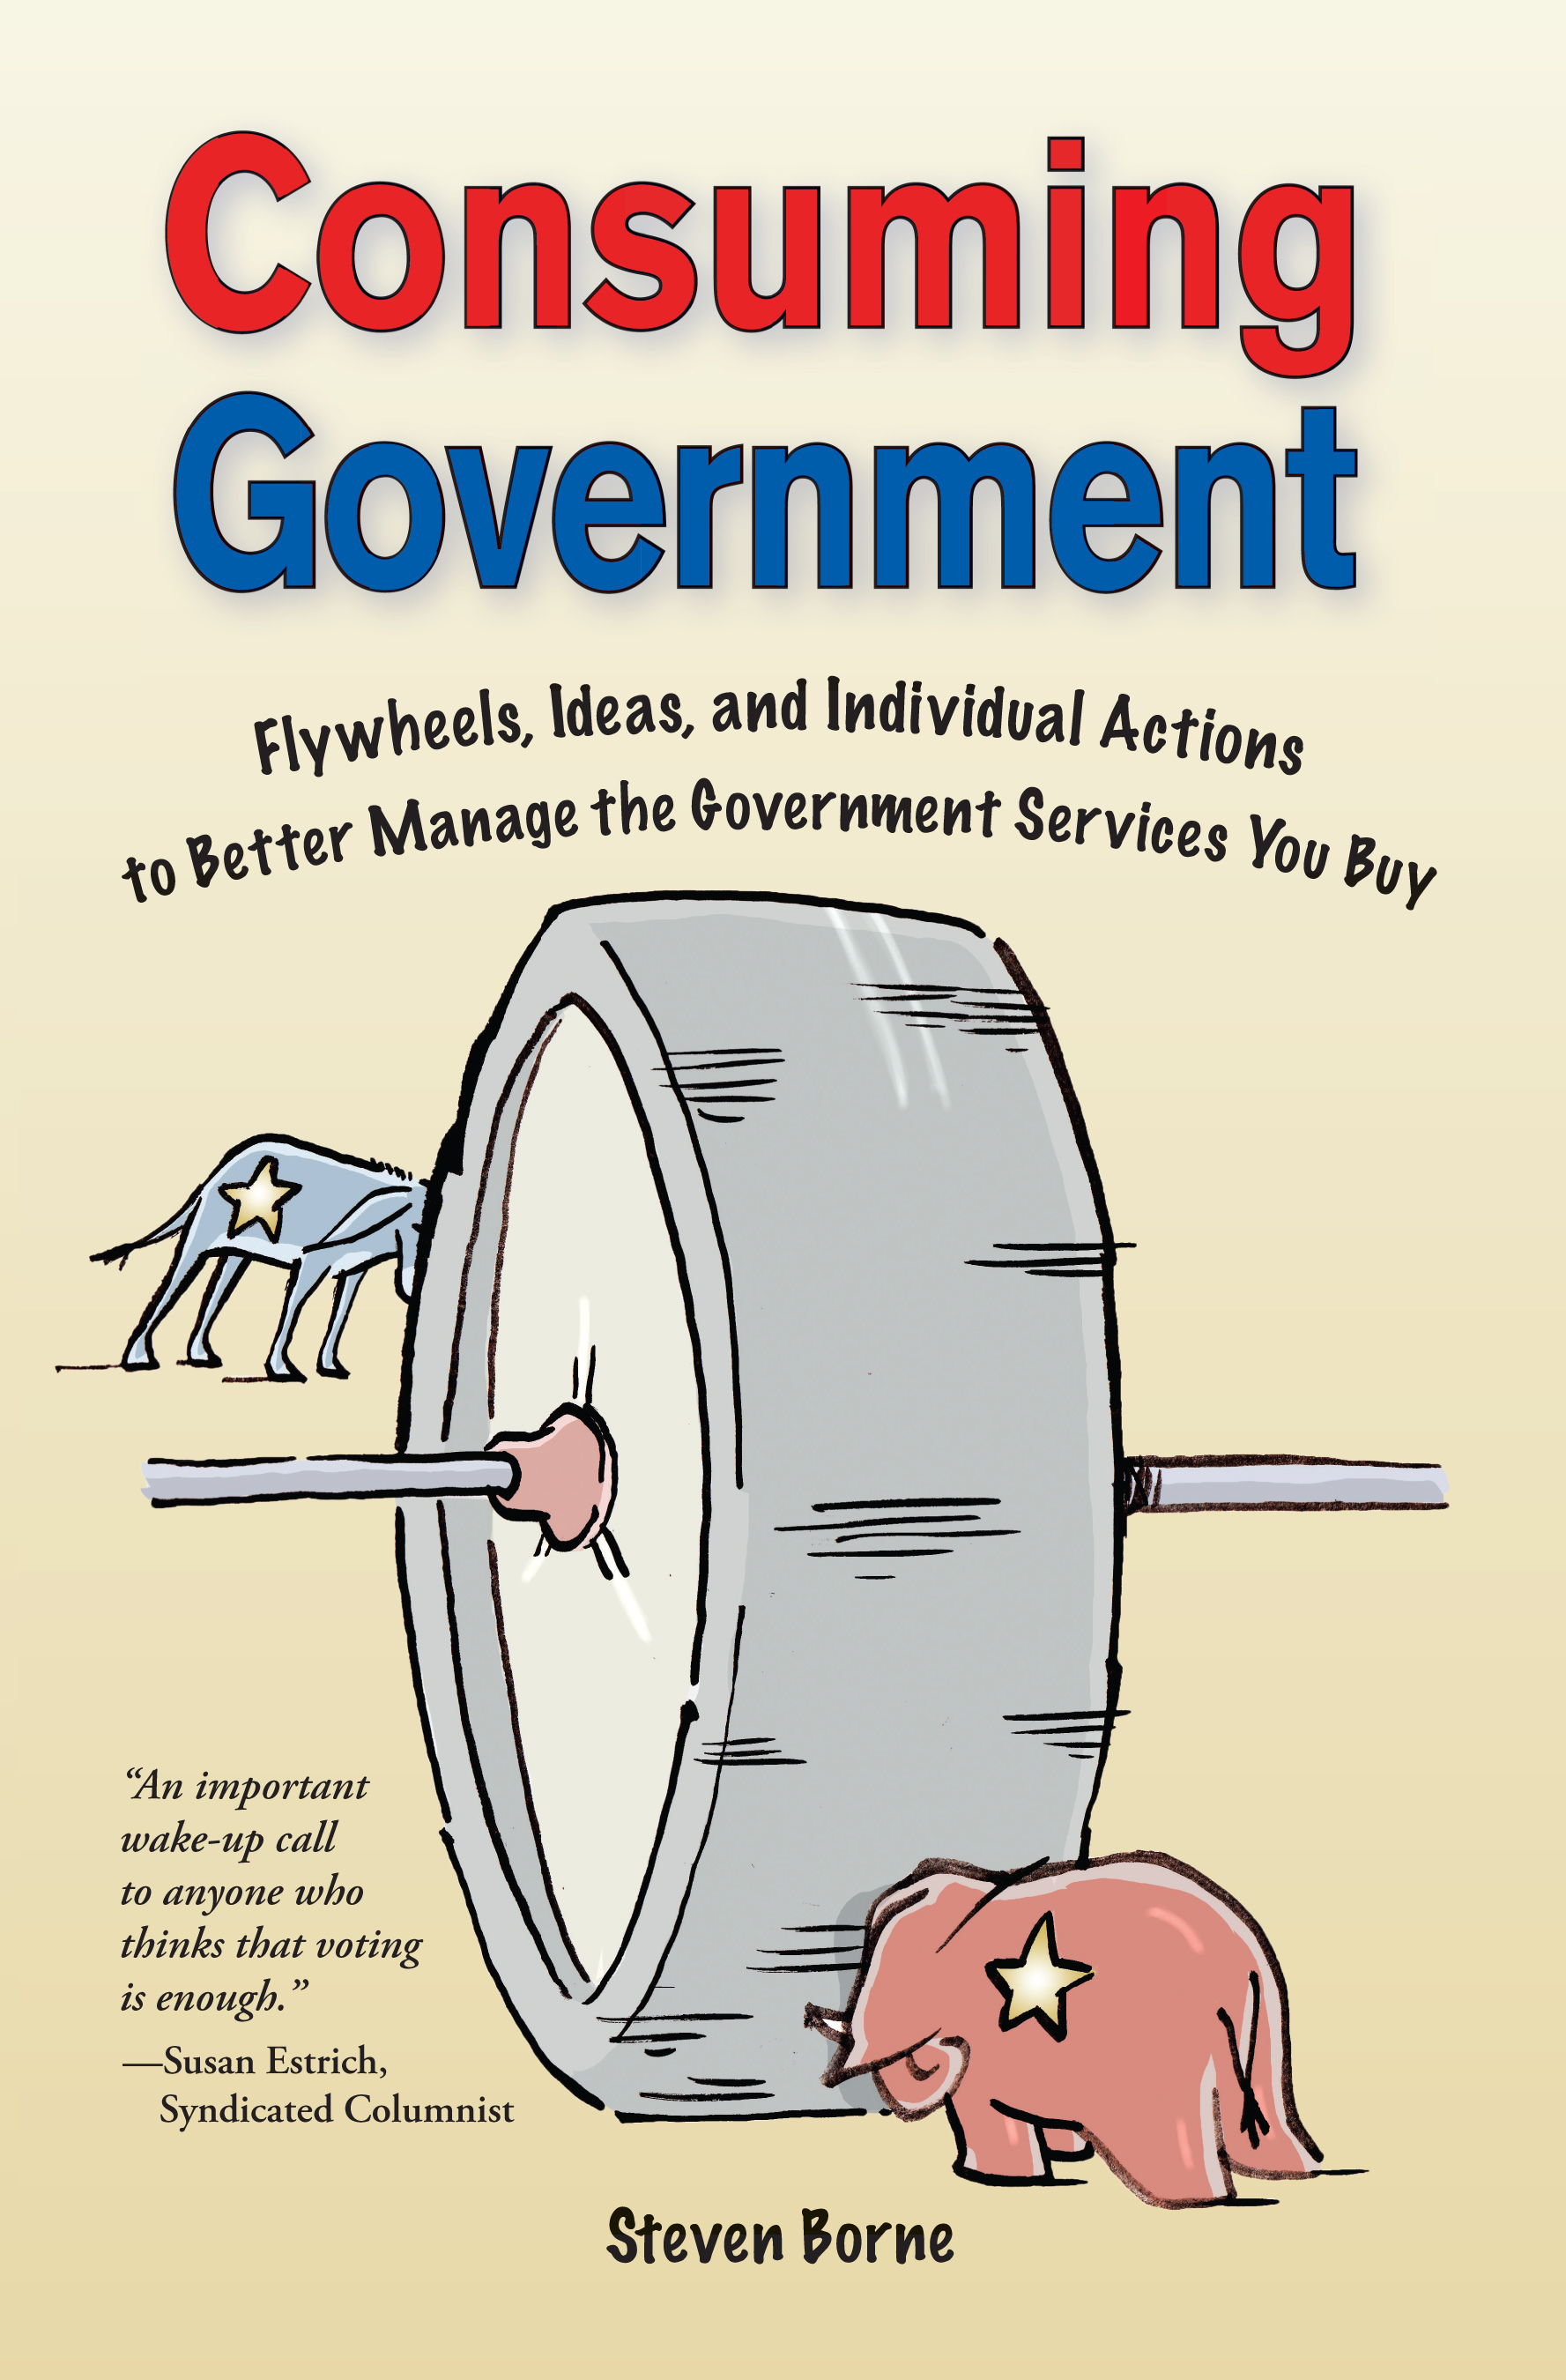 Consuming Government by Steven Borne